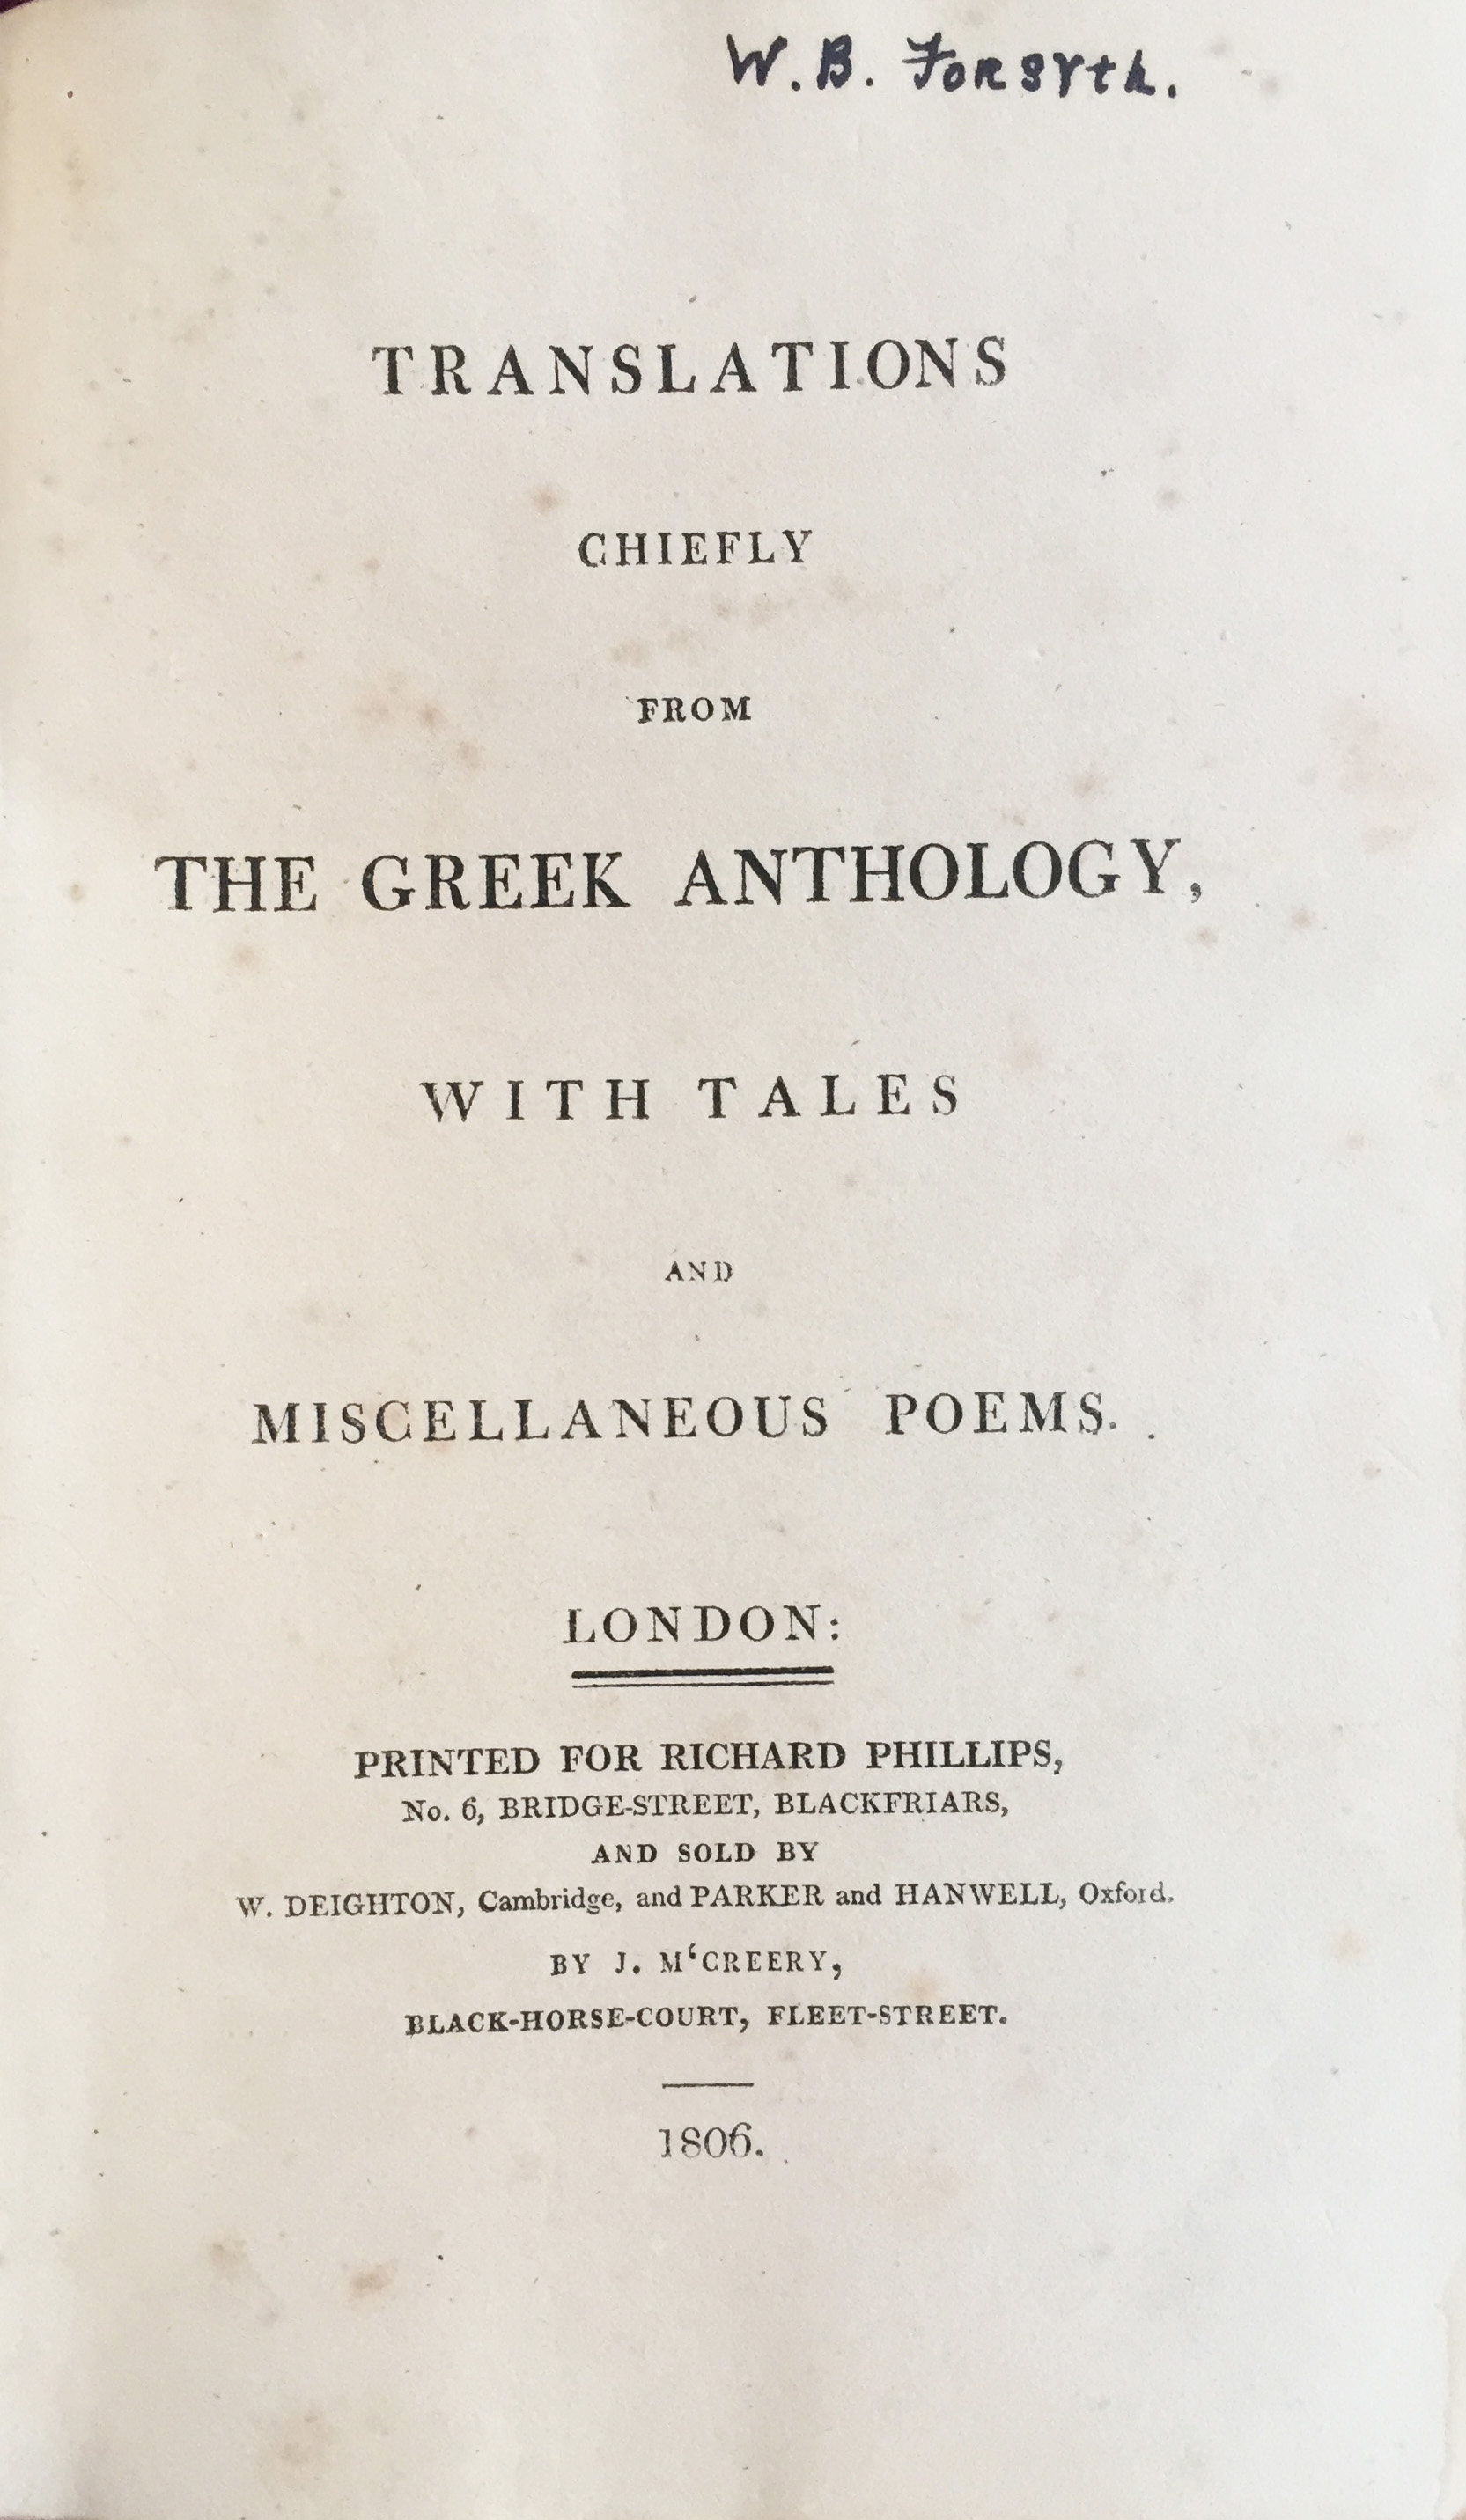 Image for Translations chiefly from the Greek anthology, with tales and miscellaneous poems.